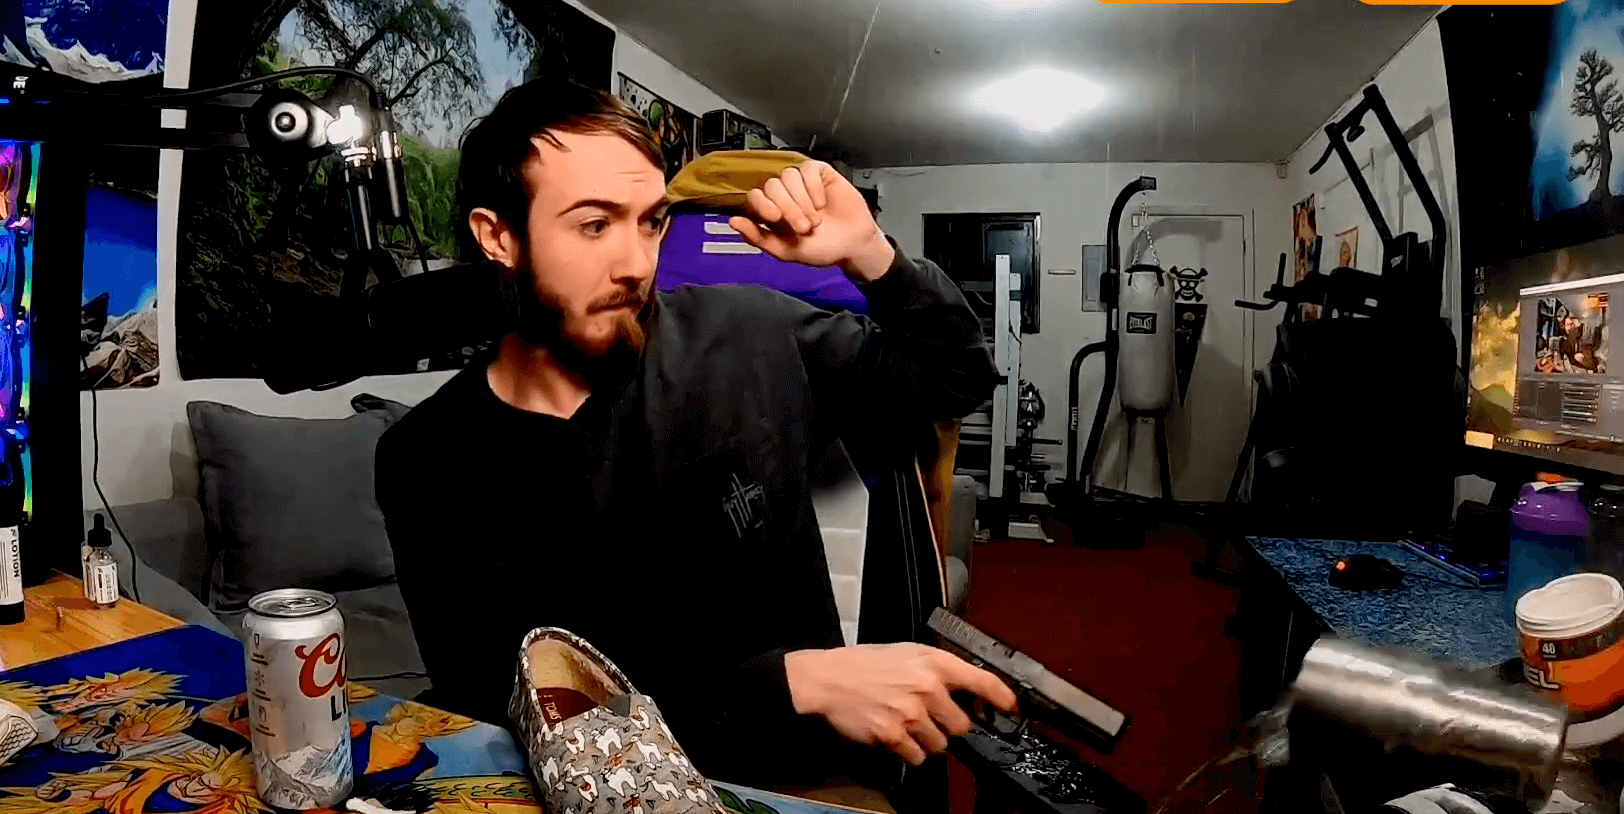 Twitch suspends streamer for discharging a firearm on air